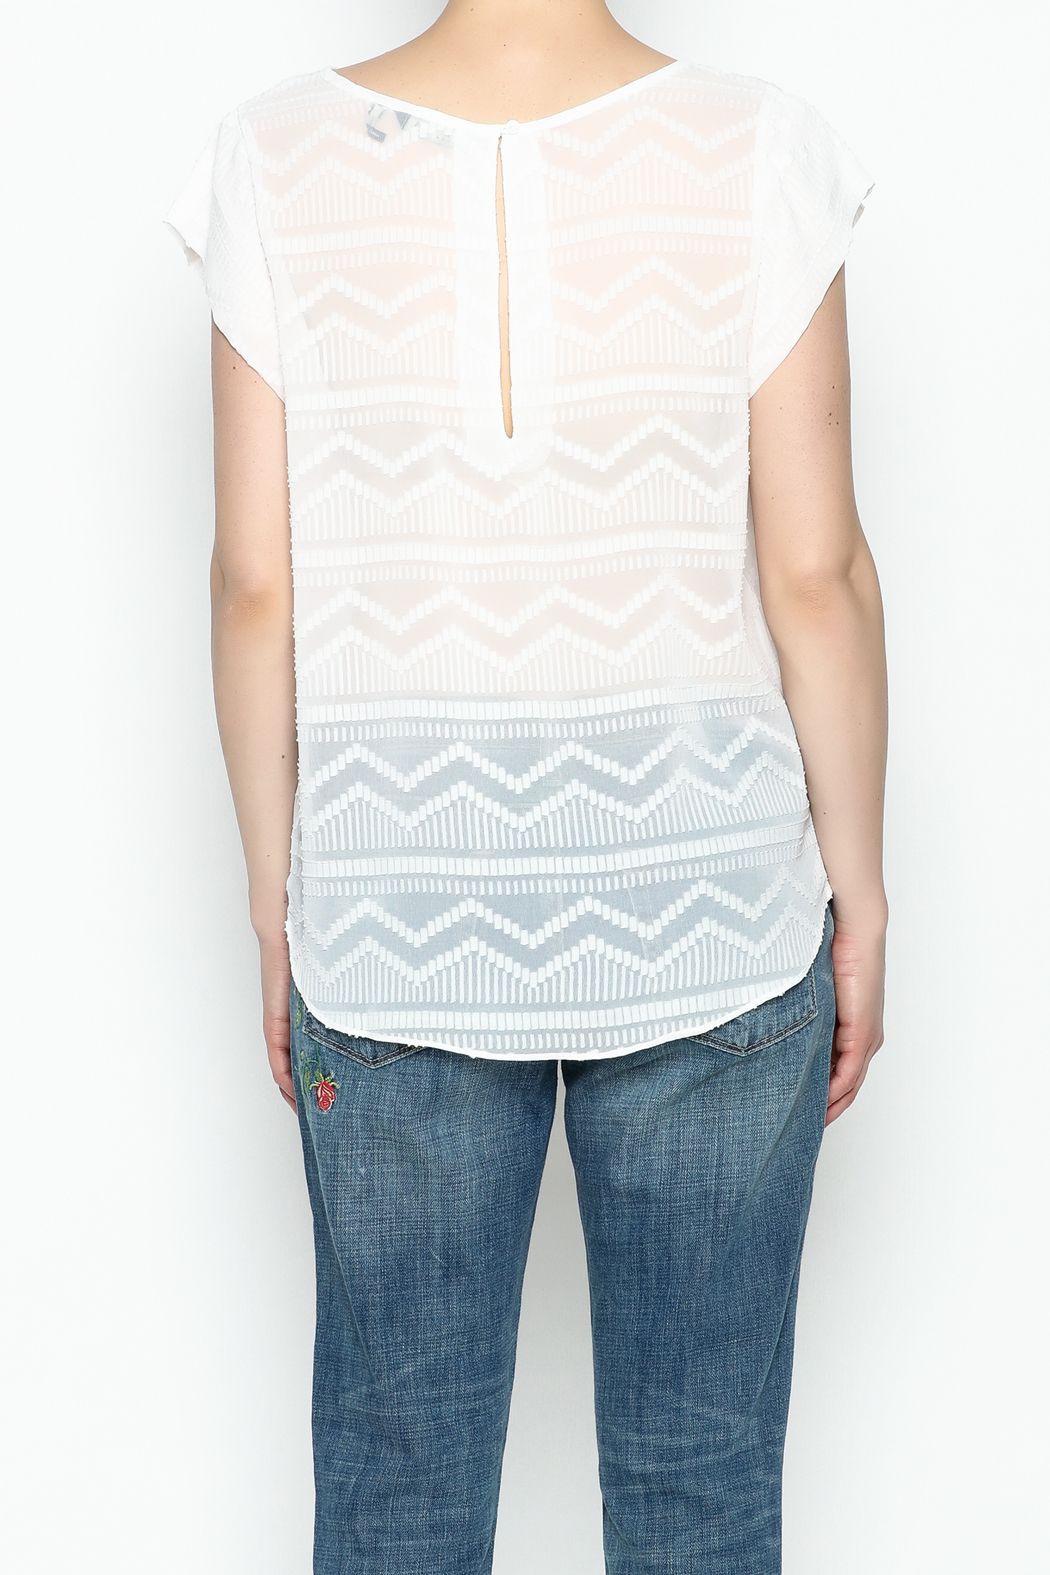 Zoa Aztec Embroidered Blouse - Back Cropped Image